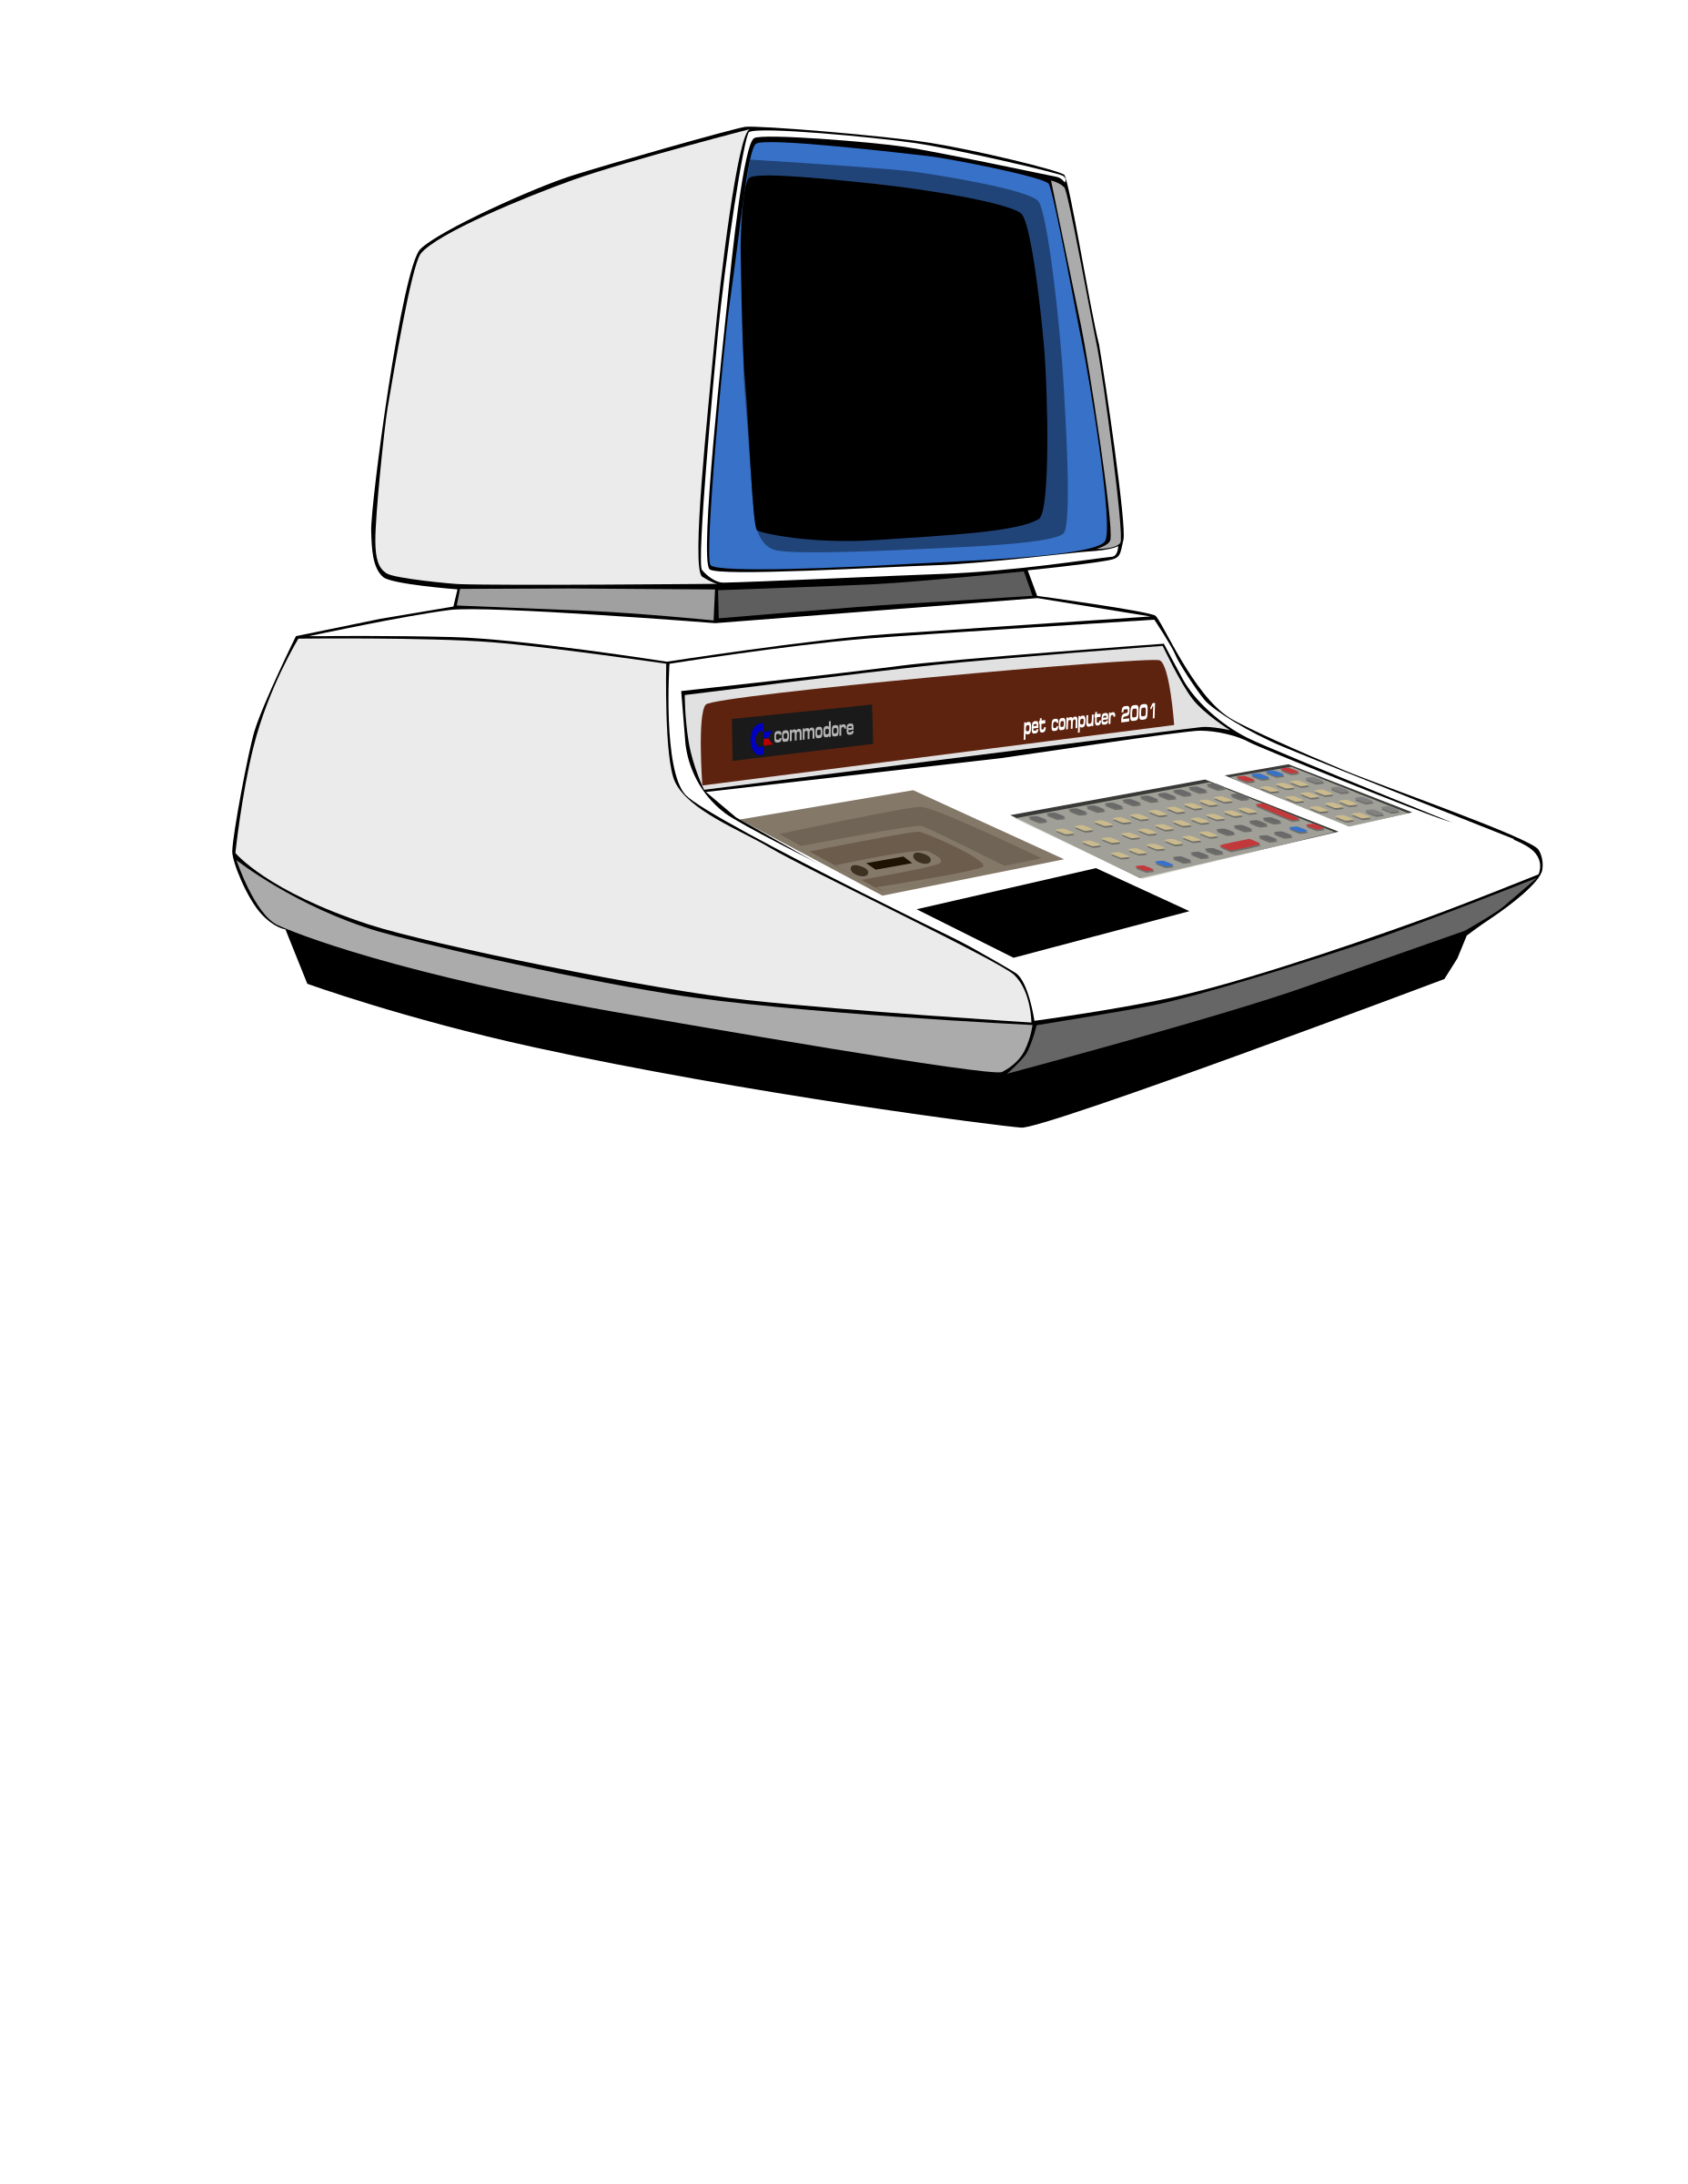 Commodore PET Computer Prototype by larrymade